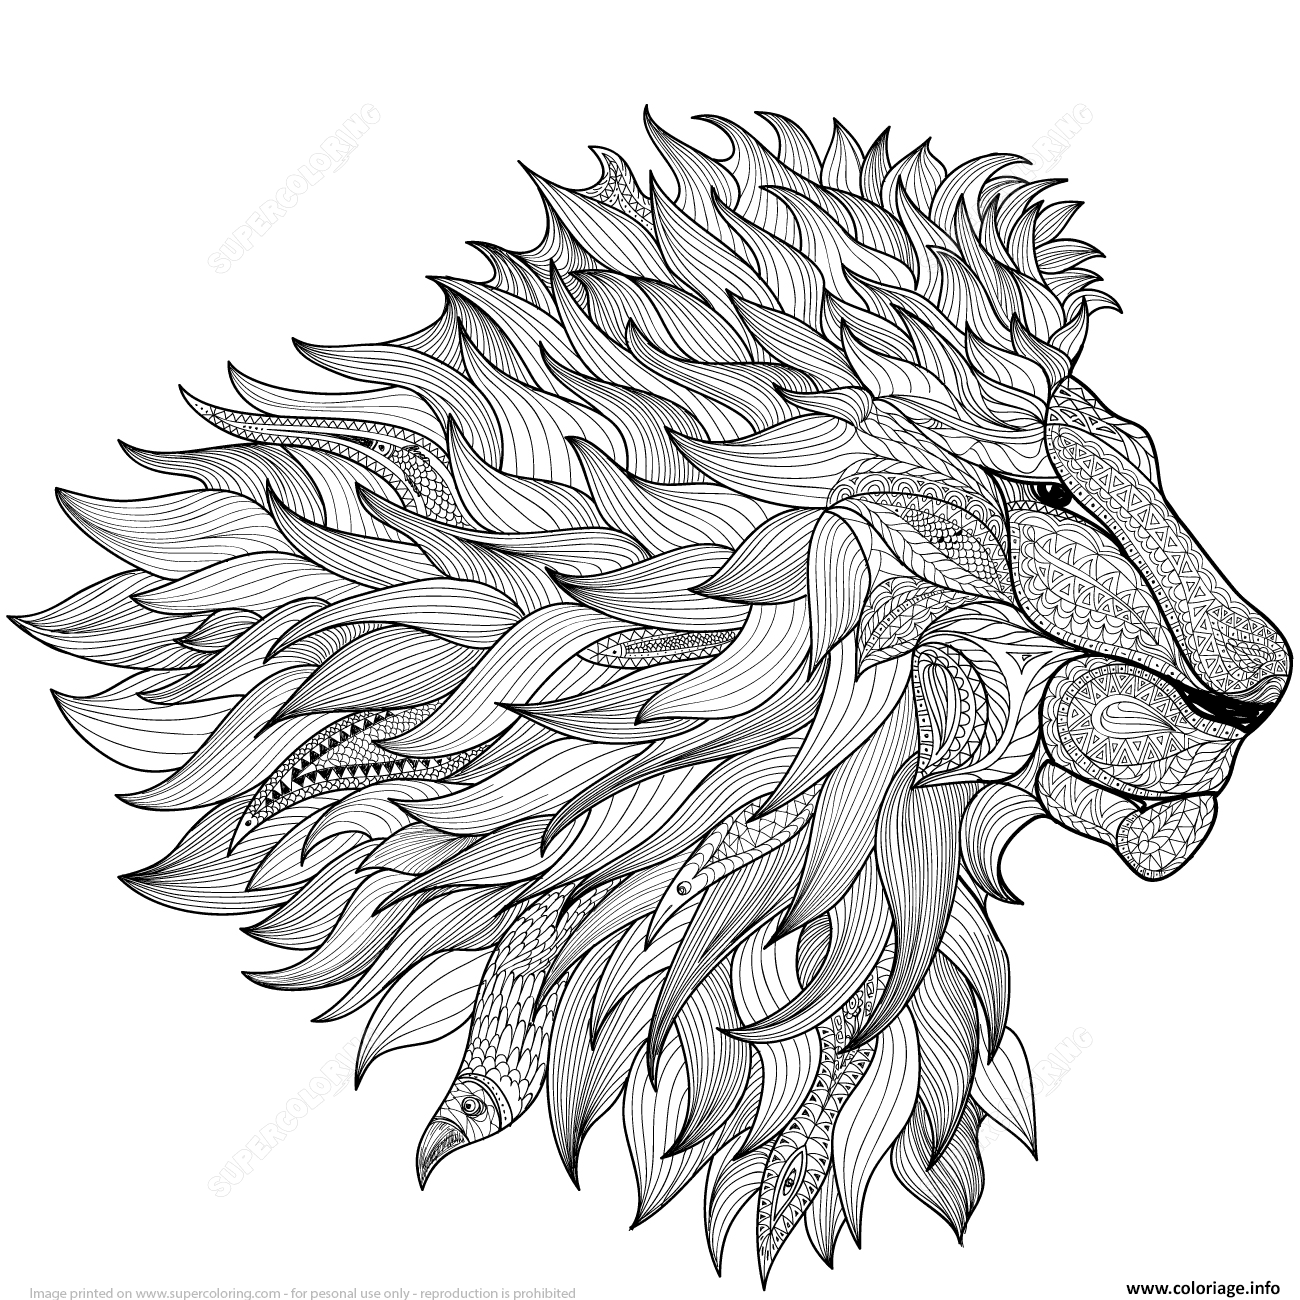 Dessin lion zentangle adulte Coloriage Gratuit à Imprimer